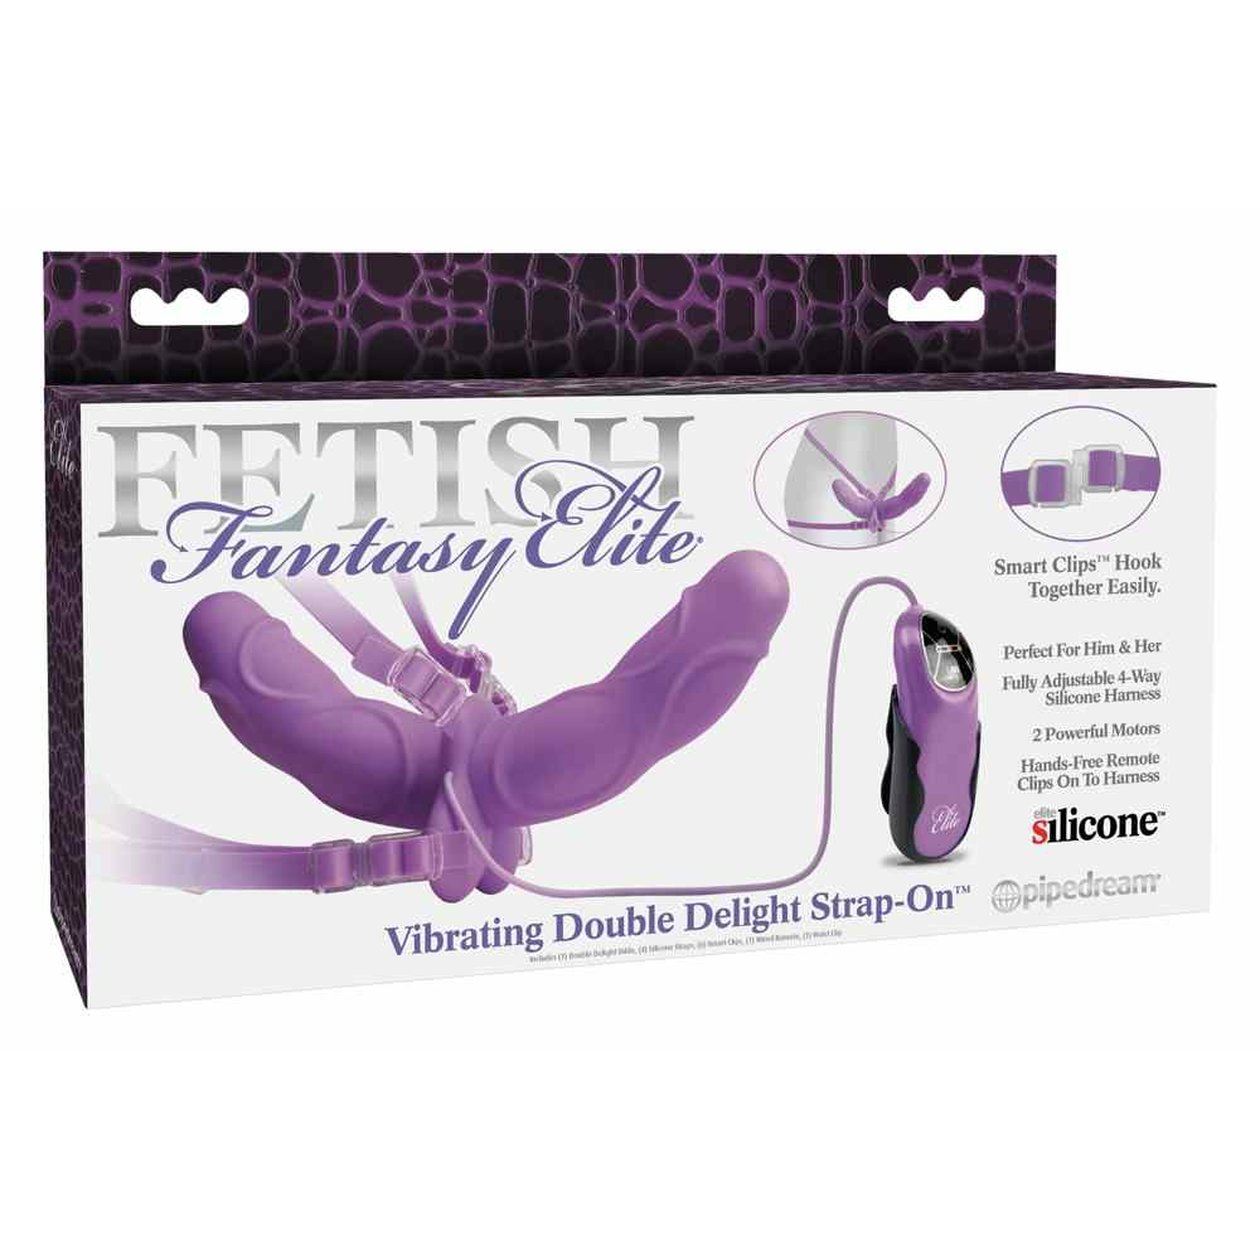 Vibrating Double Delight Strap-on